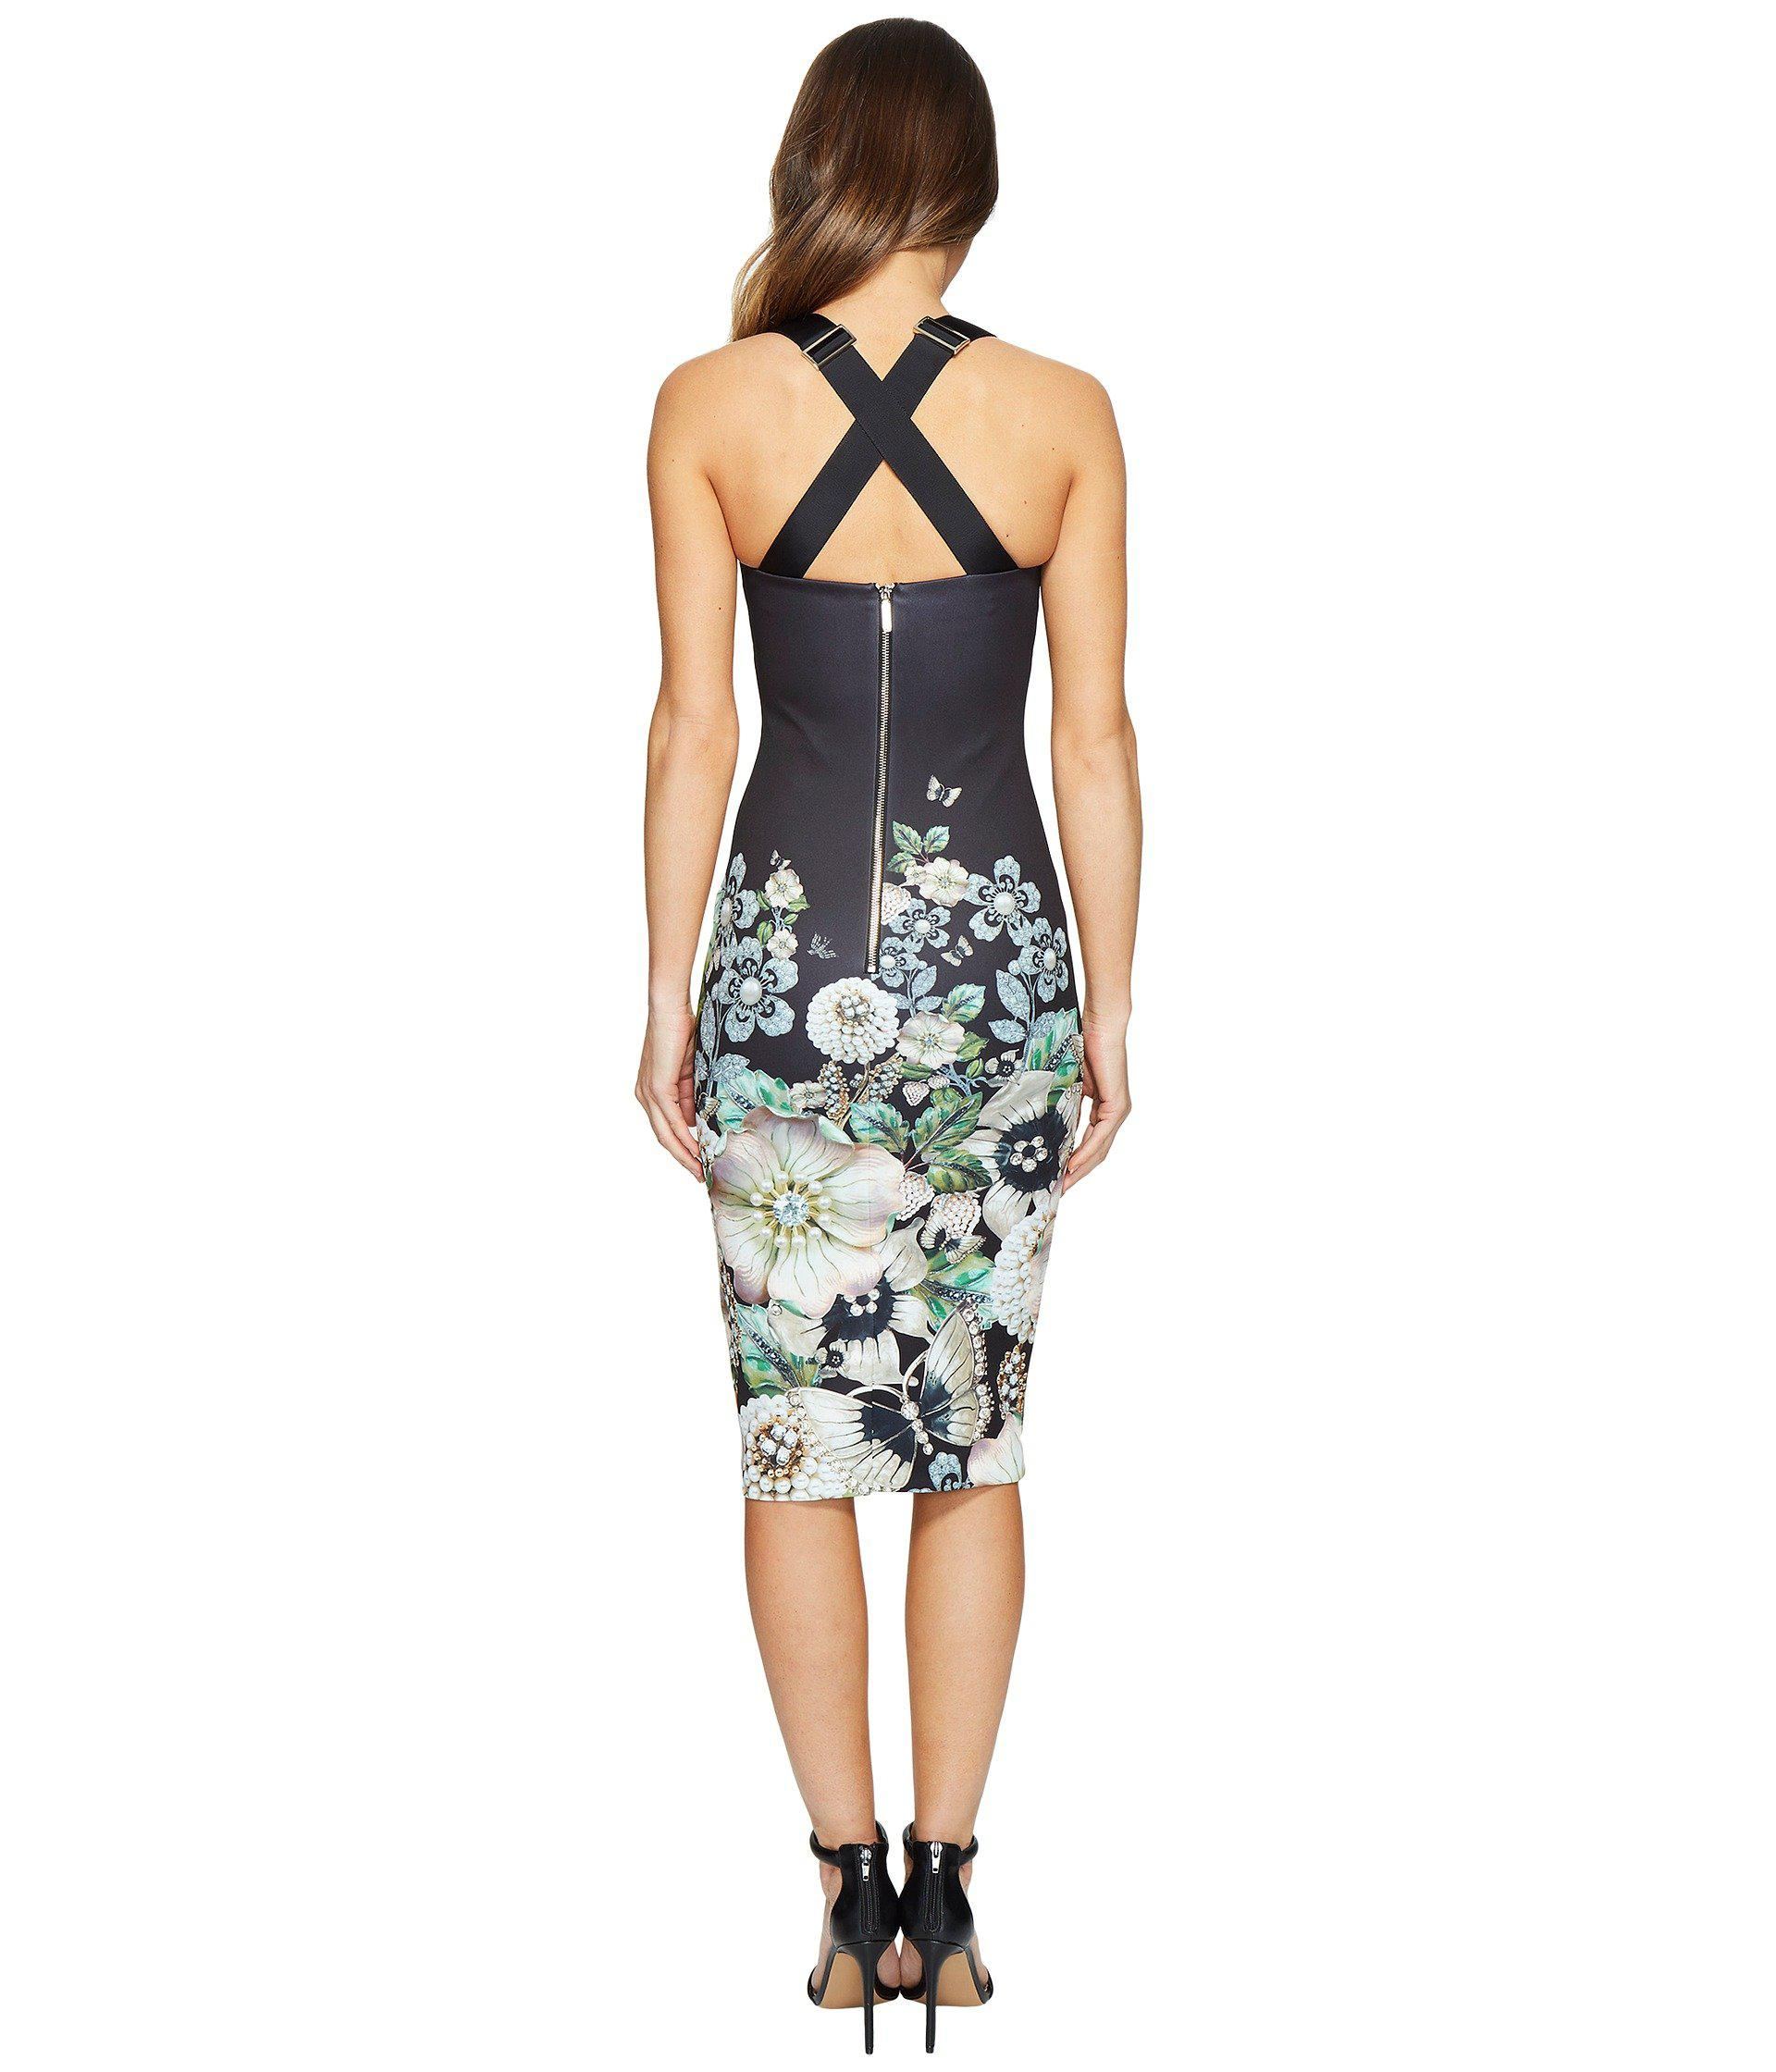 f2dfa672b1b629 Lyst - Ted Baker Jayer Gem Gardens Bodycon Dress in Black